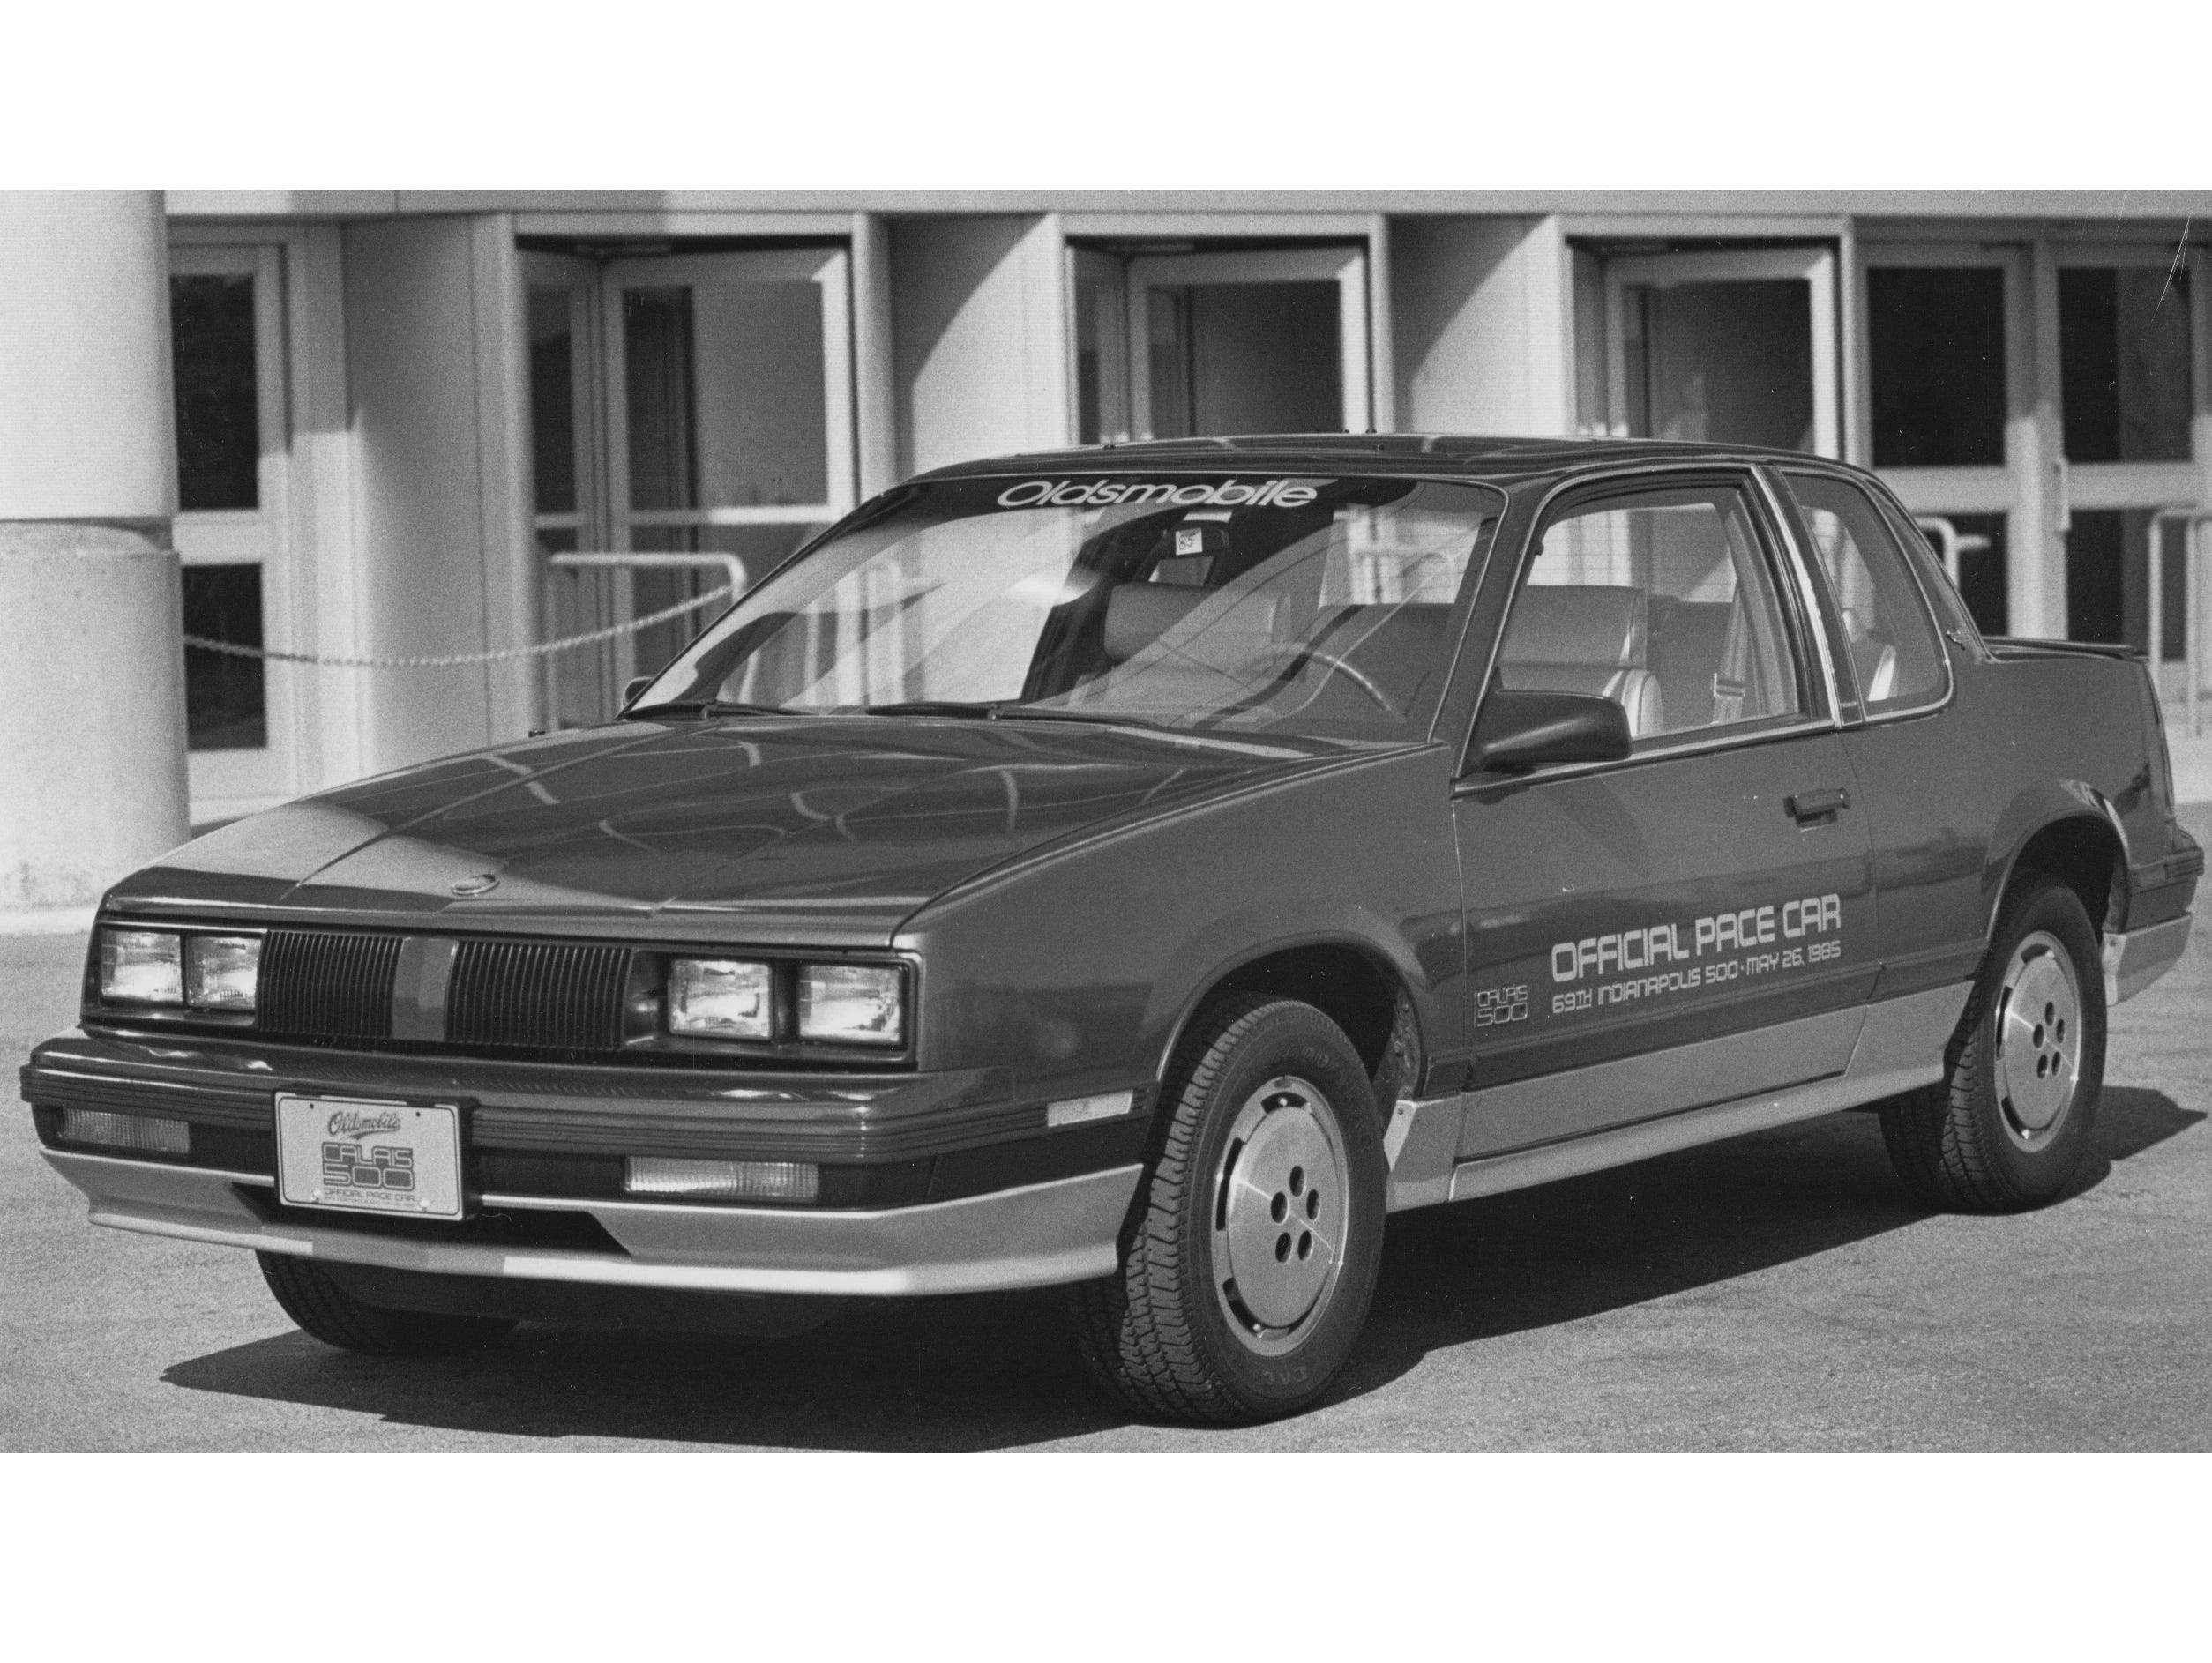 The 1985 Indianapolis 500 pace car was the Oldsmobile Calais. The actual pace car was a convertible.